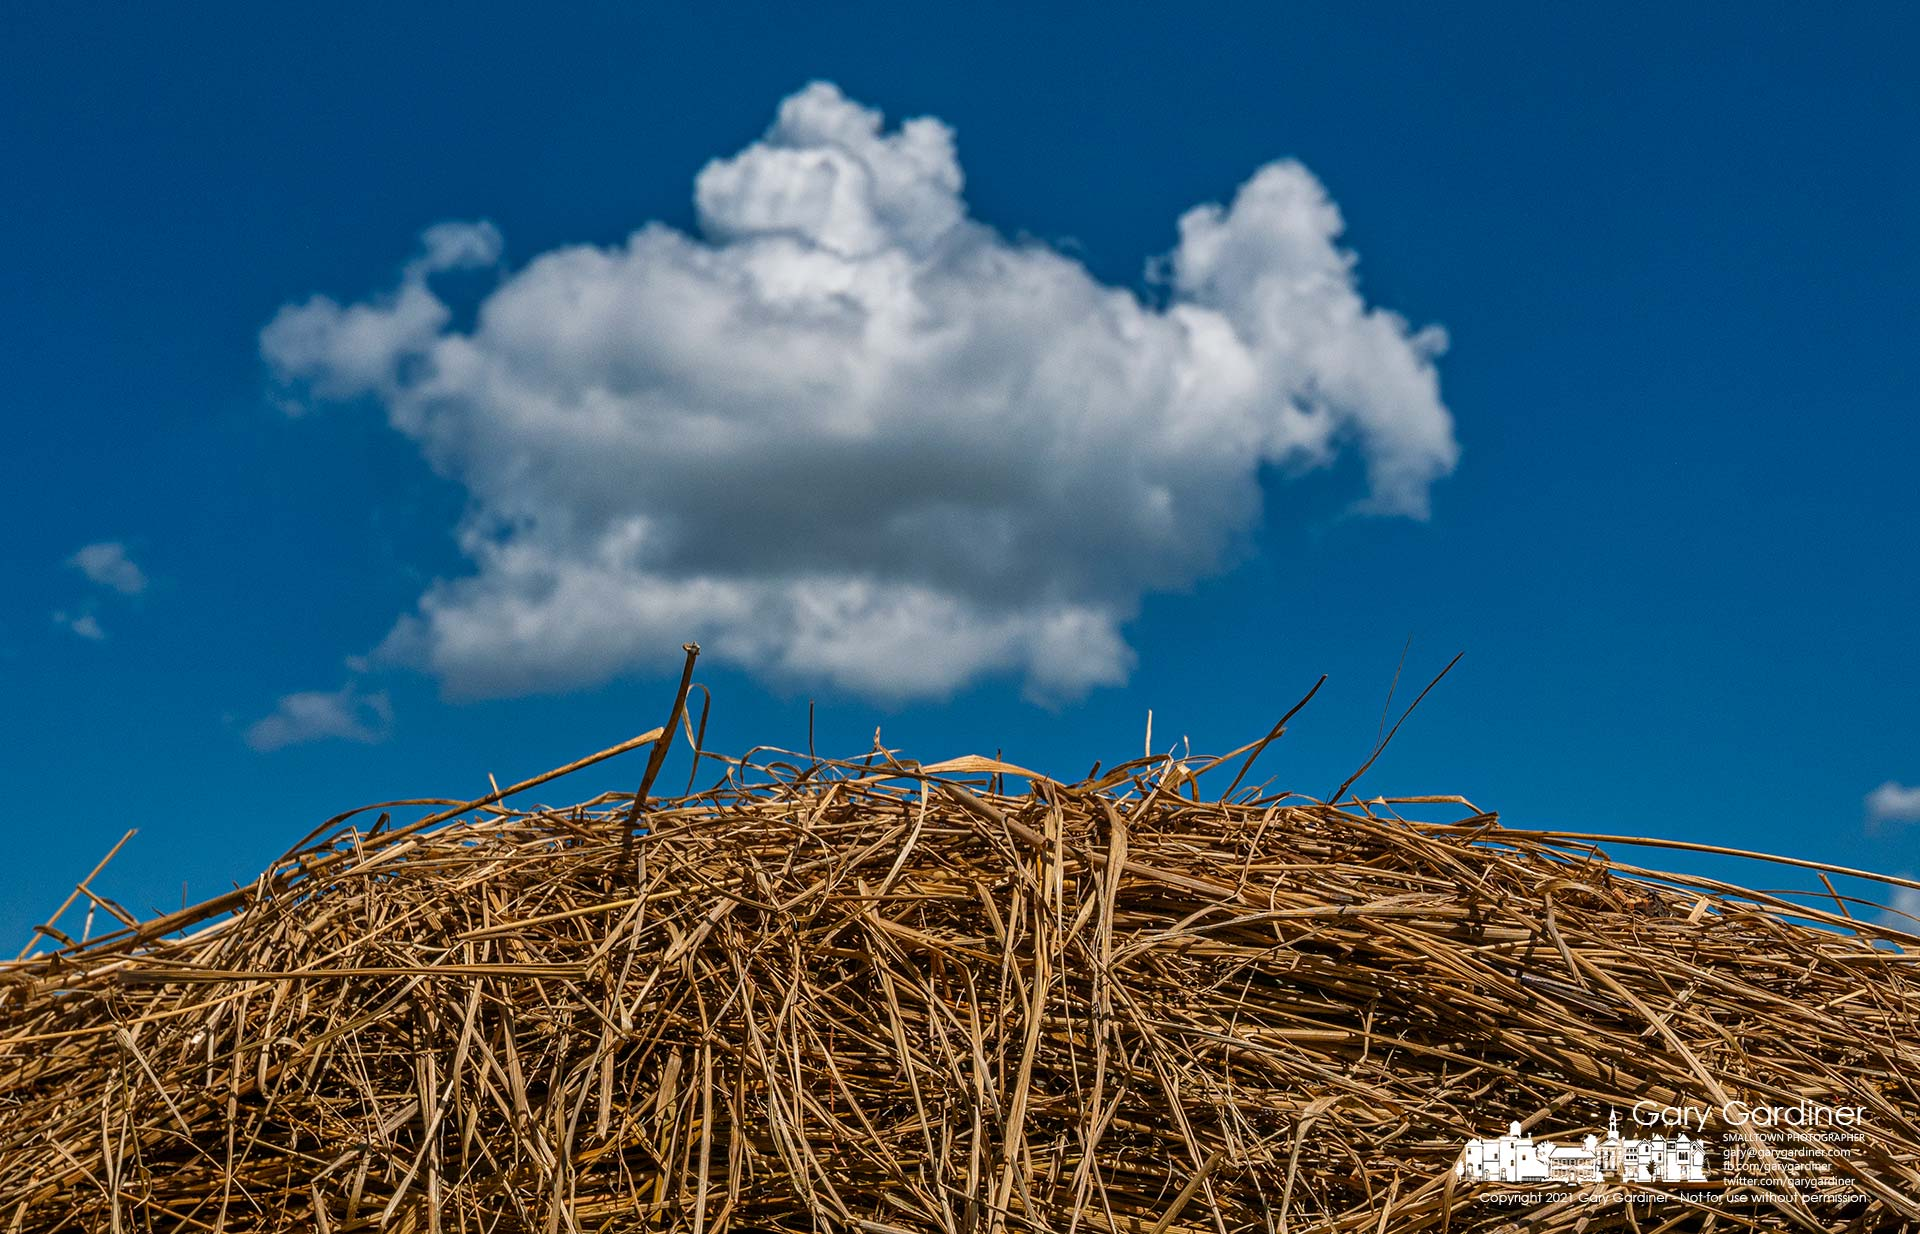 Afternoon clouds travel across a field with scattered bales of late-season hay. My Final Photo for Sept. 17, 2021.